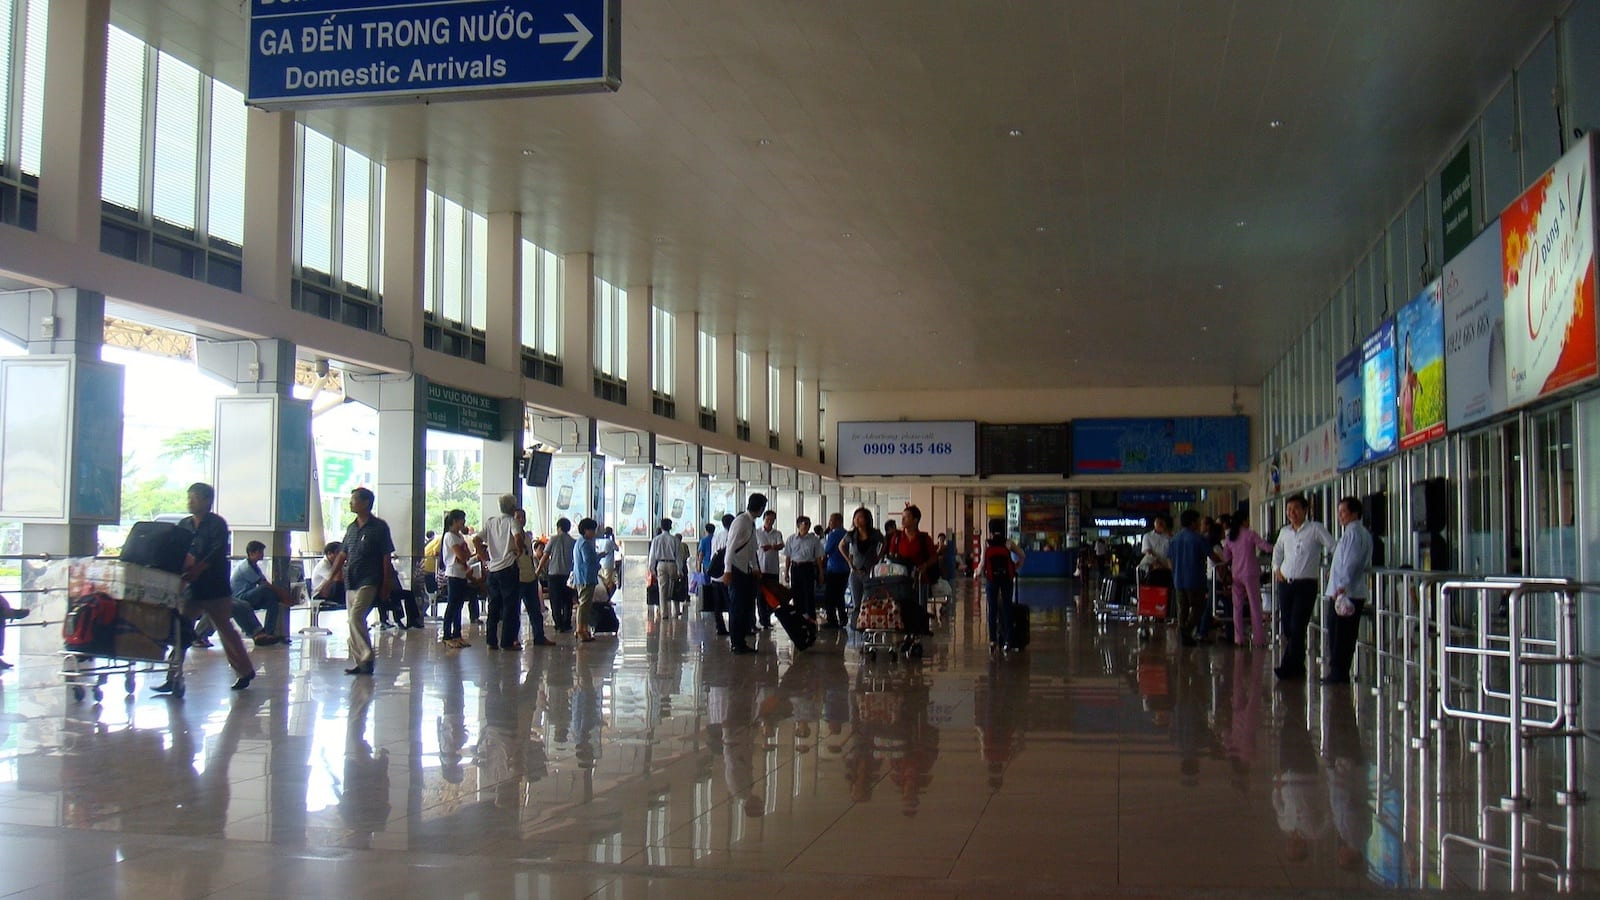 Domestic Terminal, Tan Son Nhat Airport, Ho Chi Minh City